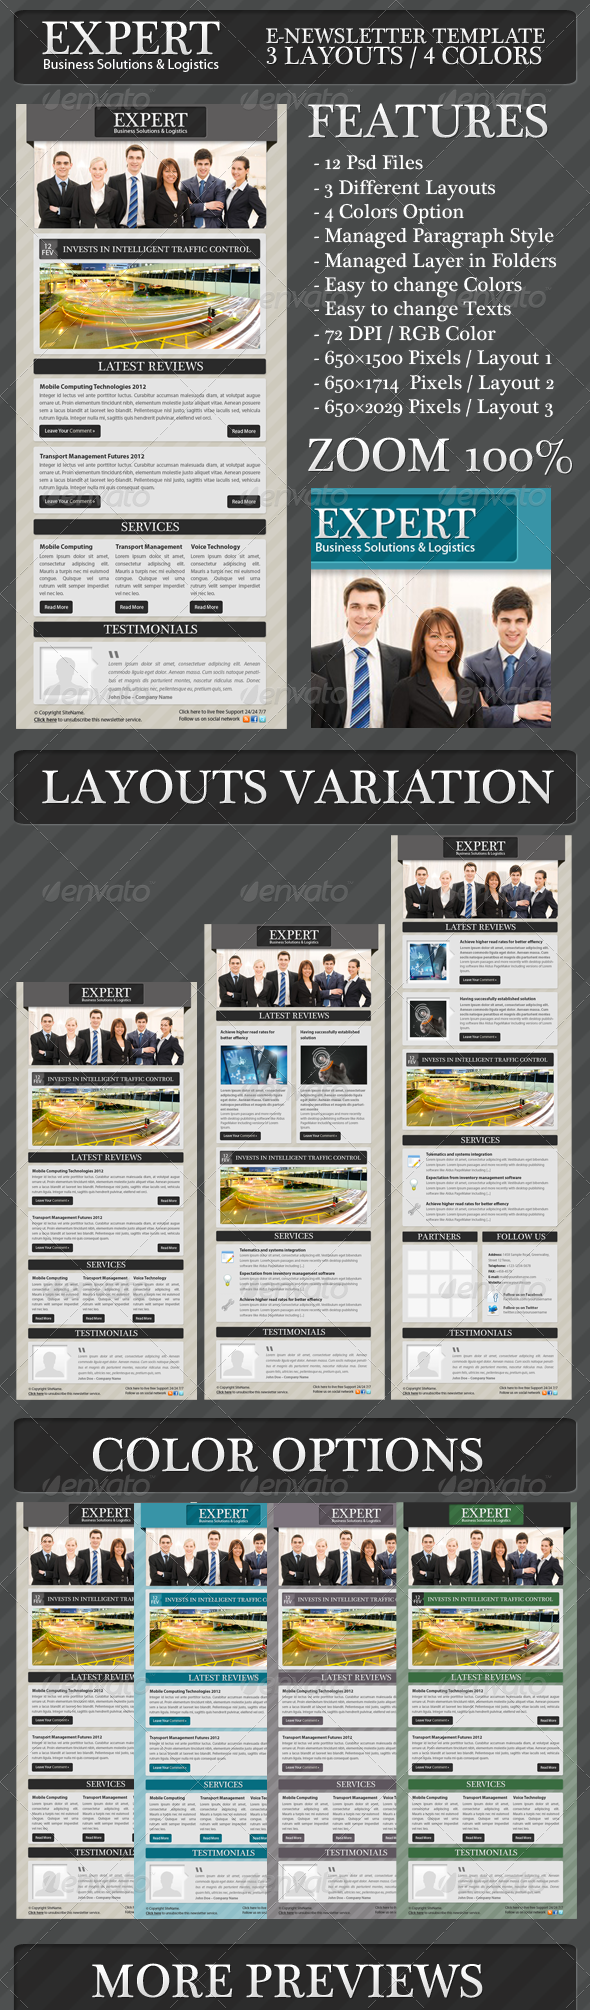 GraphicRiver Expert Business Solution E-newsletter Template 1461841